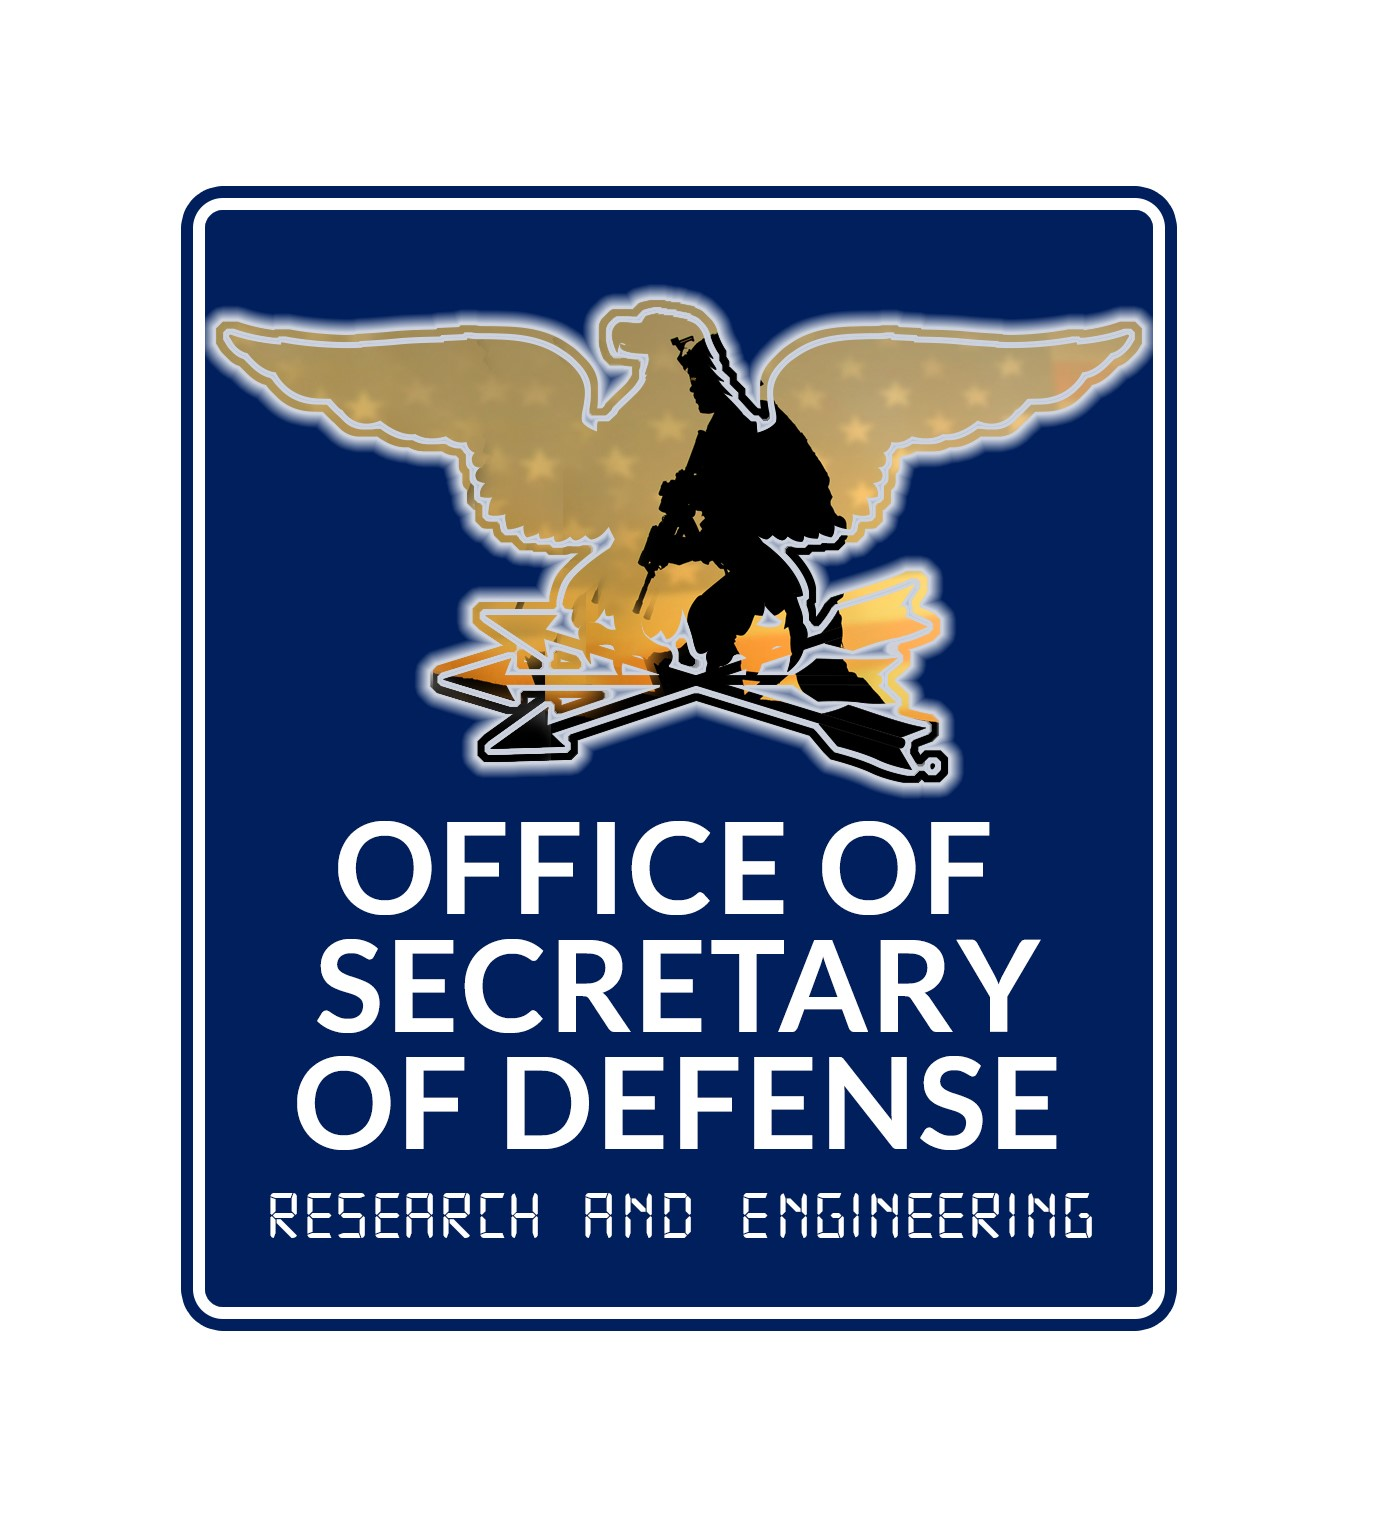 Office of Secretary of Defense